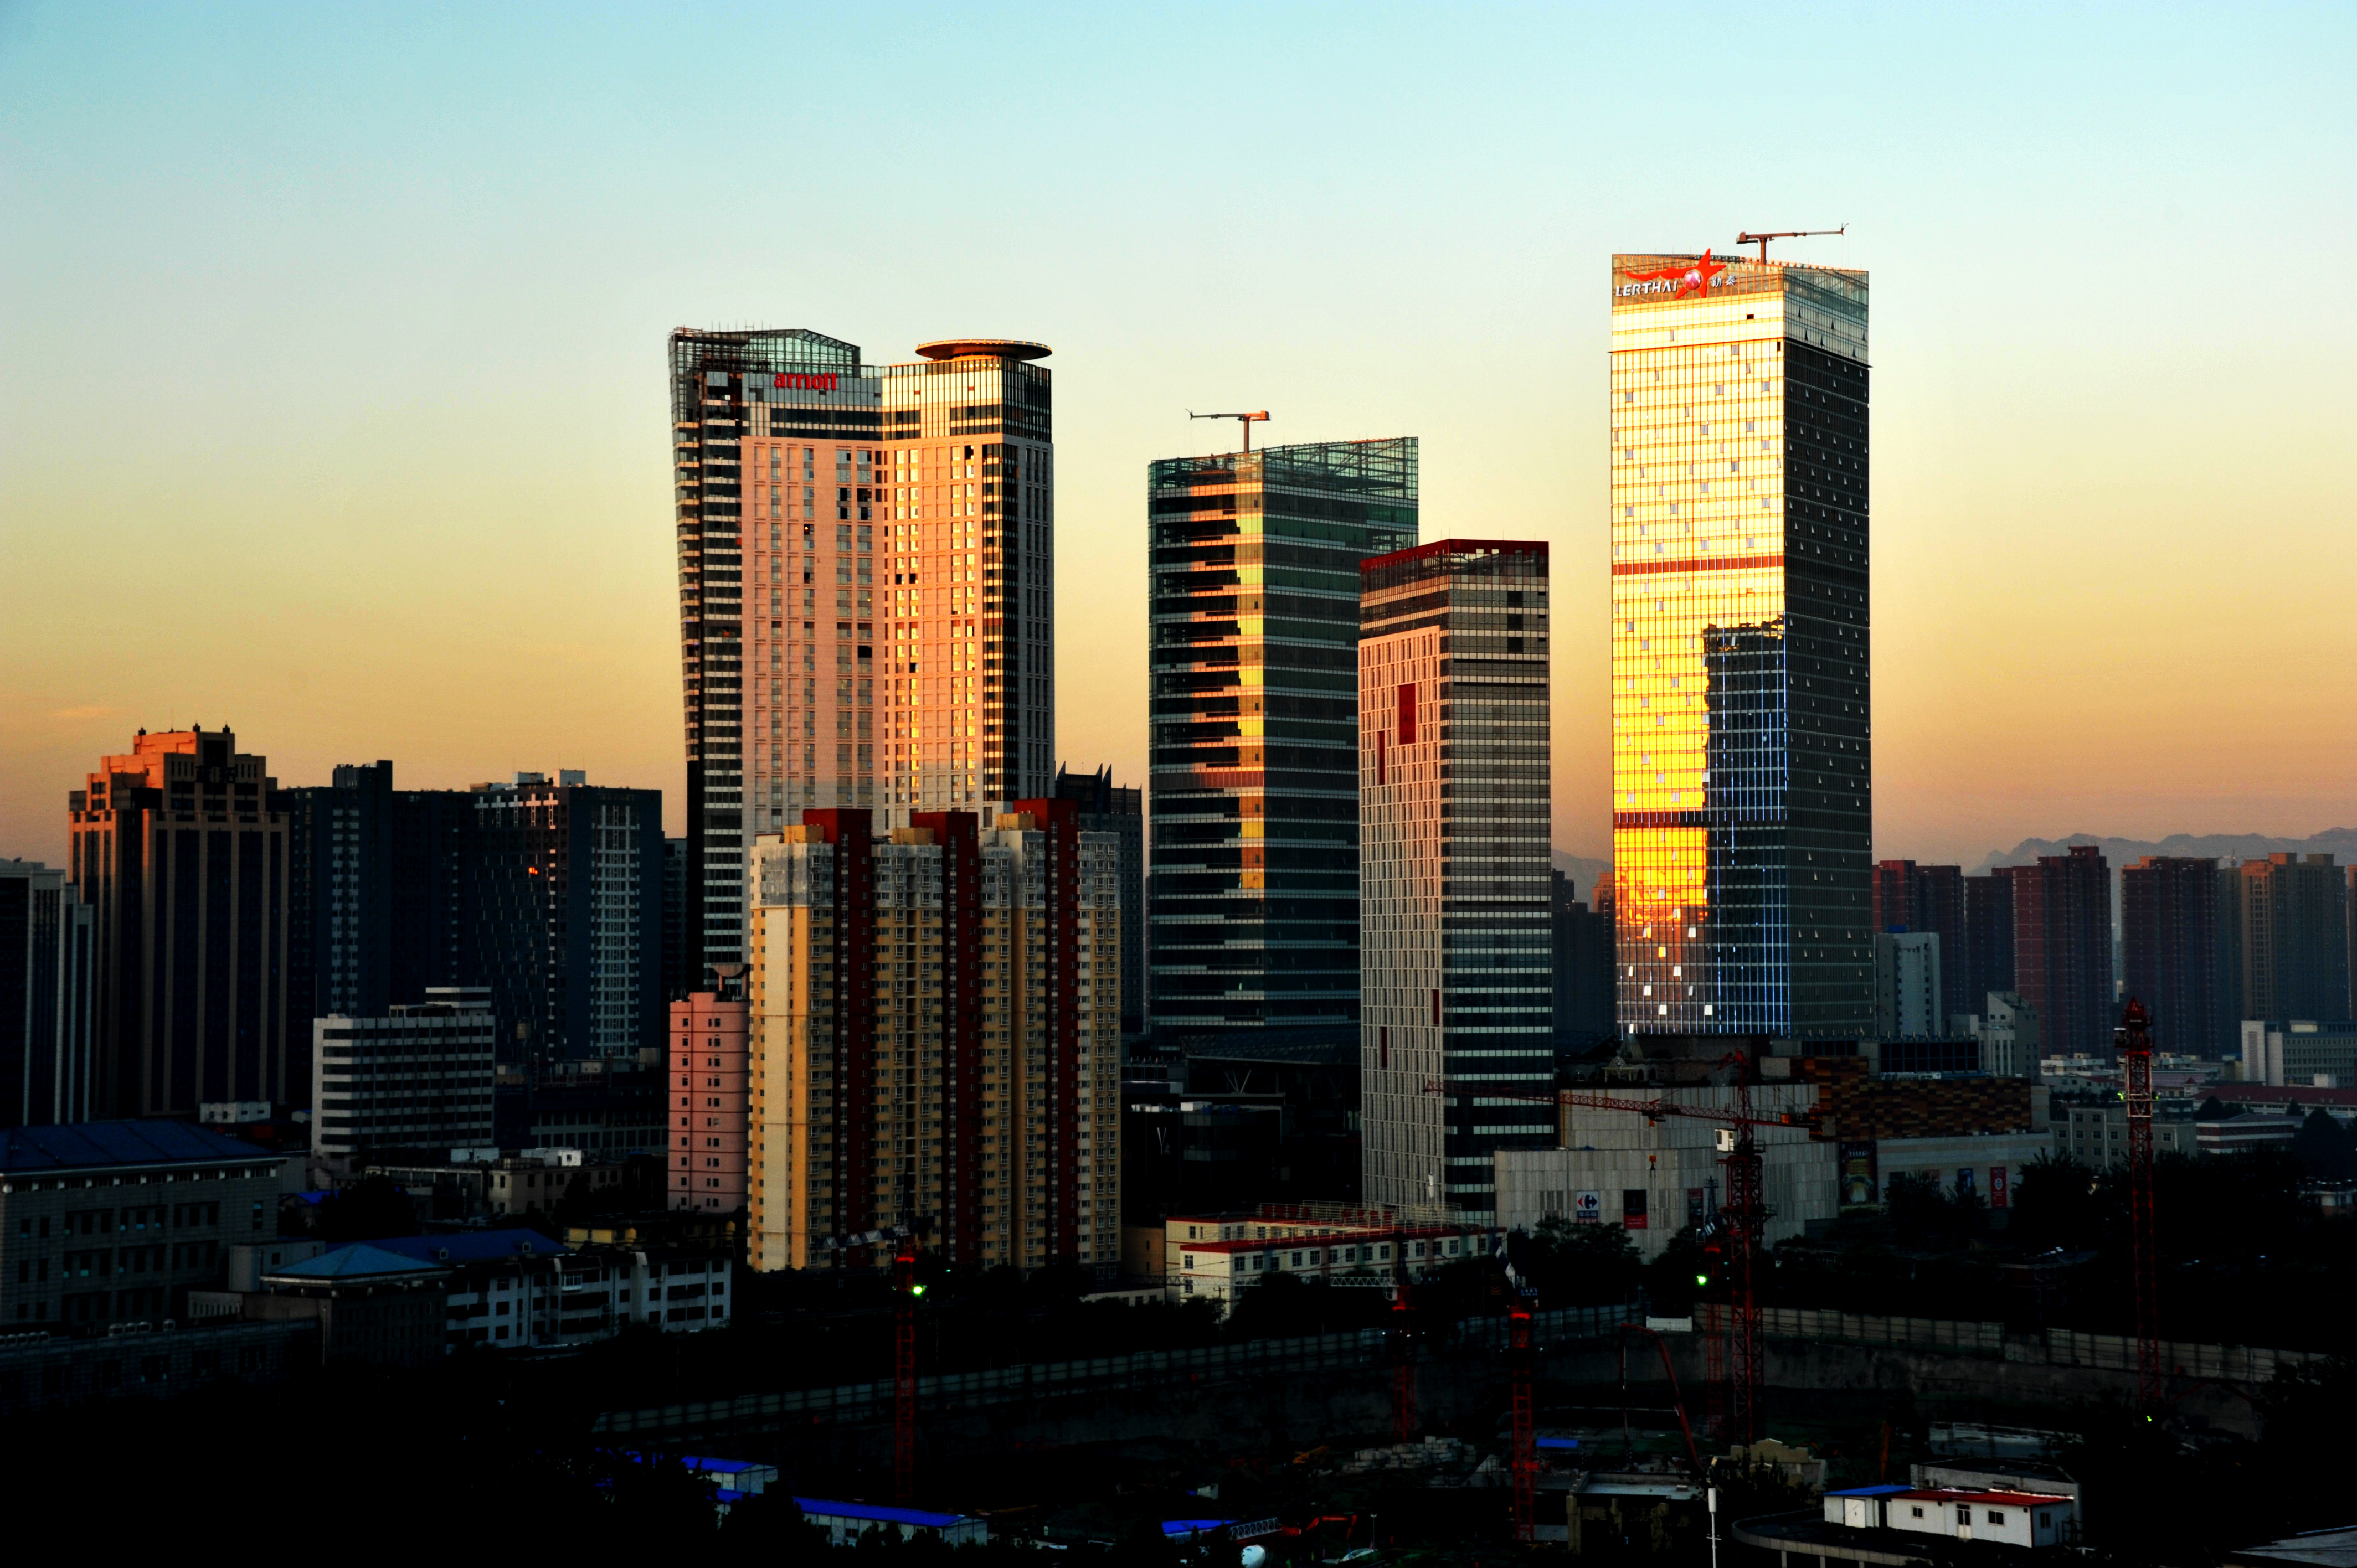 Shiajiazhuang Lerthai Center towers